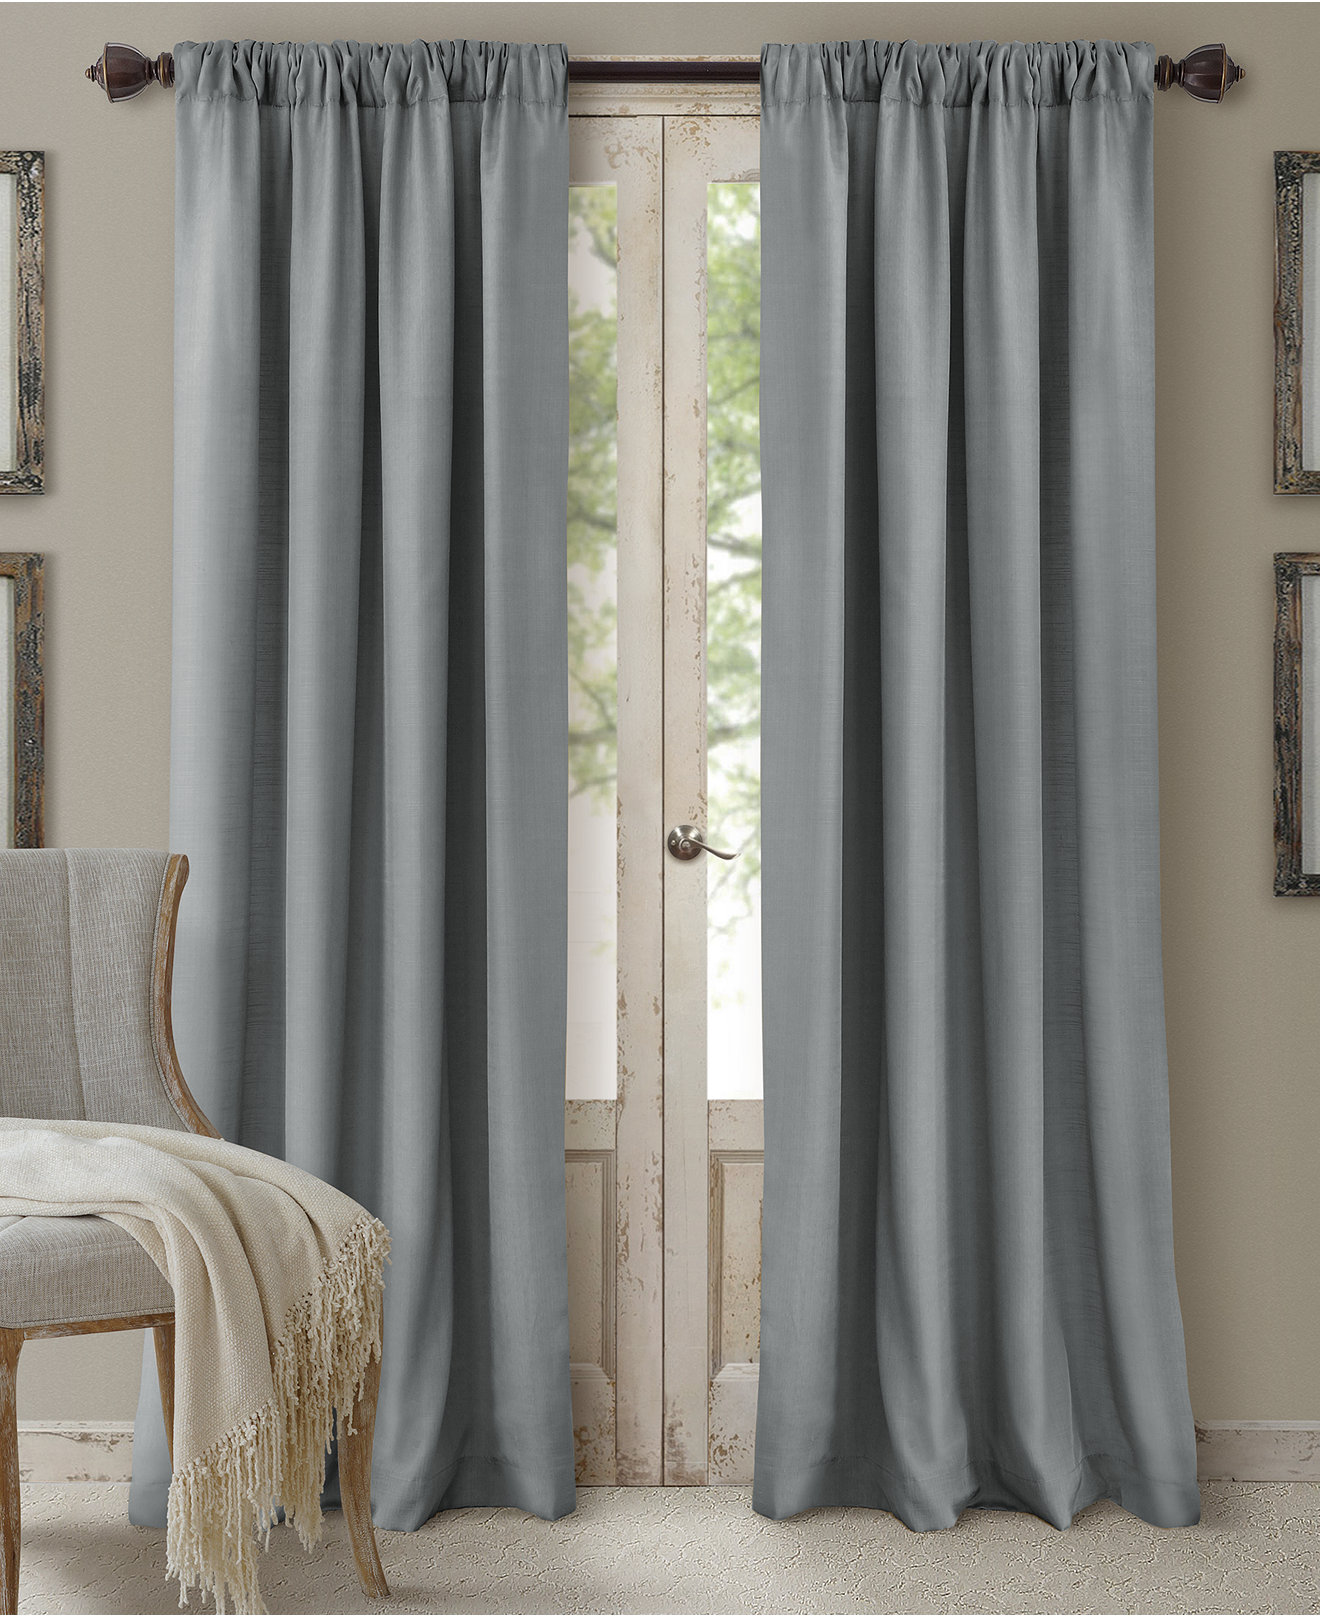 Macys Curtains For Living Room Elrene Cachet 3 In 1 Room Darkening Window Treatment Collection